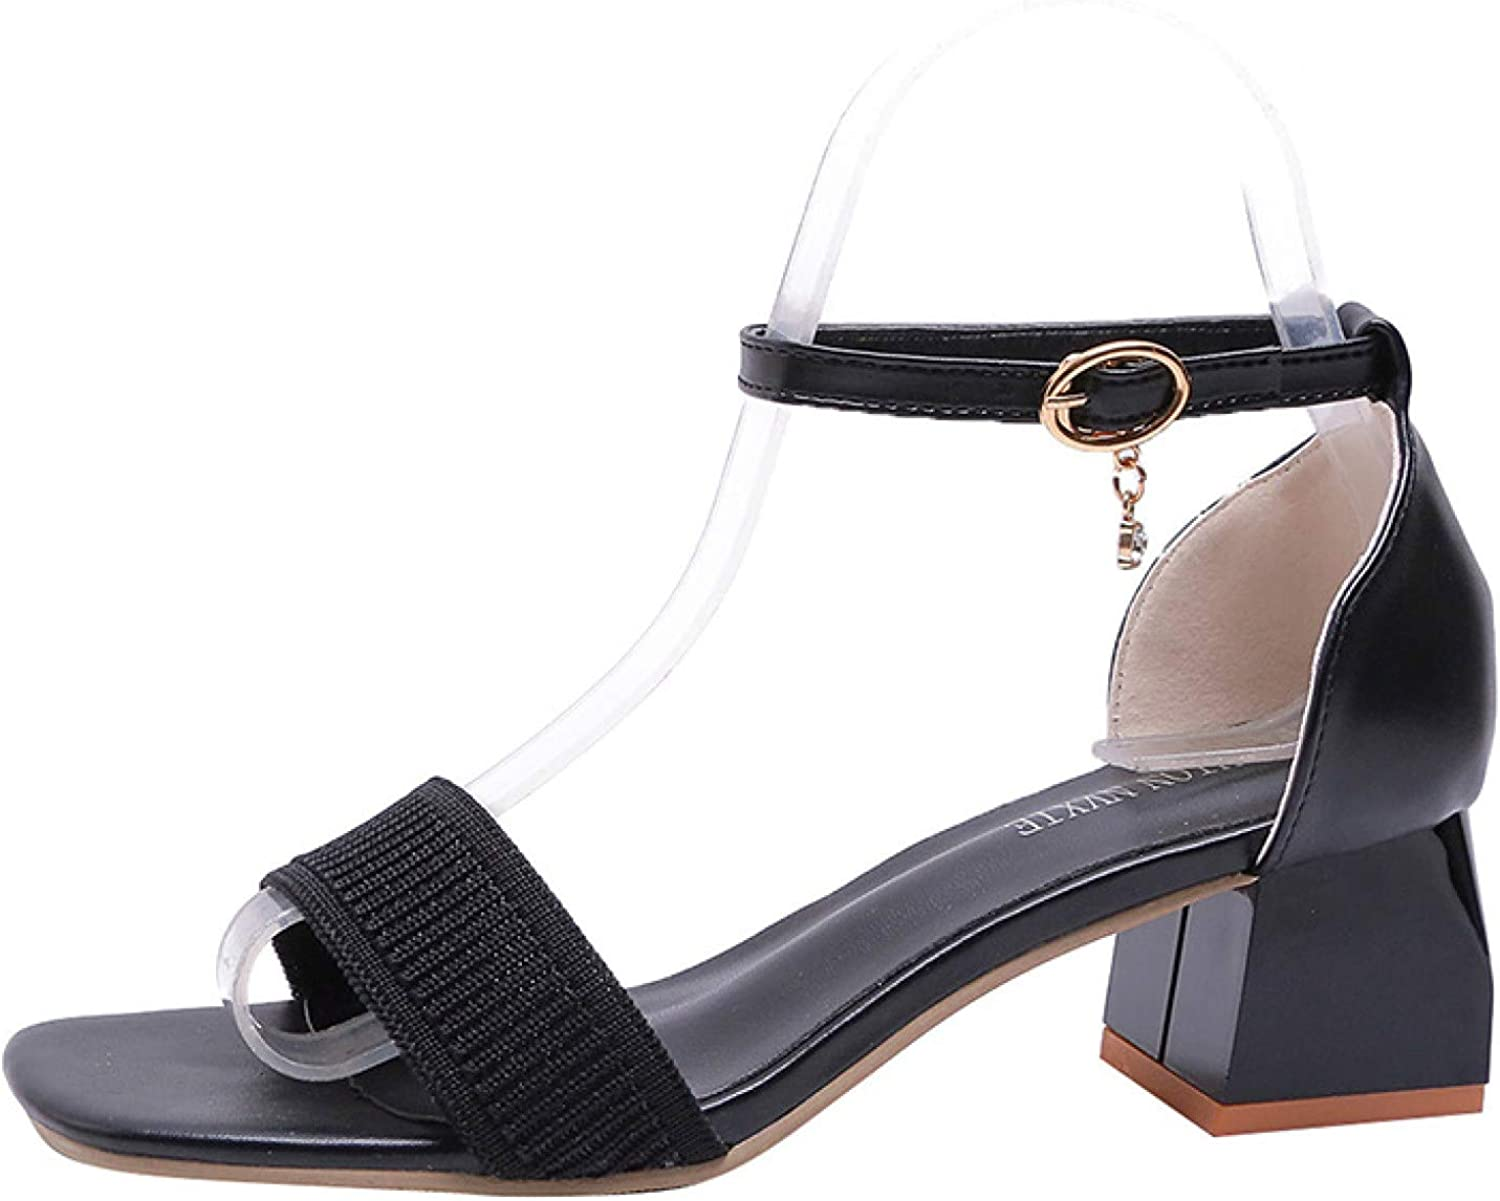 Womens Platform Wedges Sandal Adjustable Op Washington Mall Buckle Ankle Strappy Limited price sale